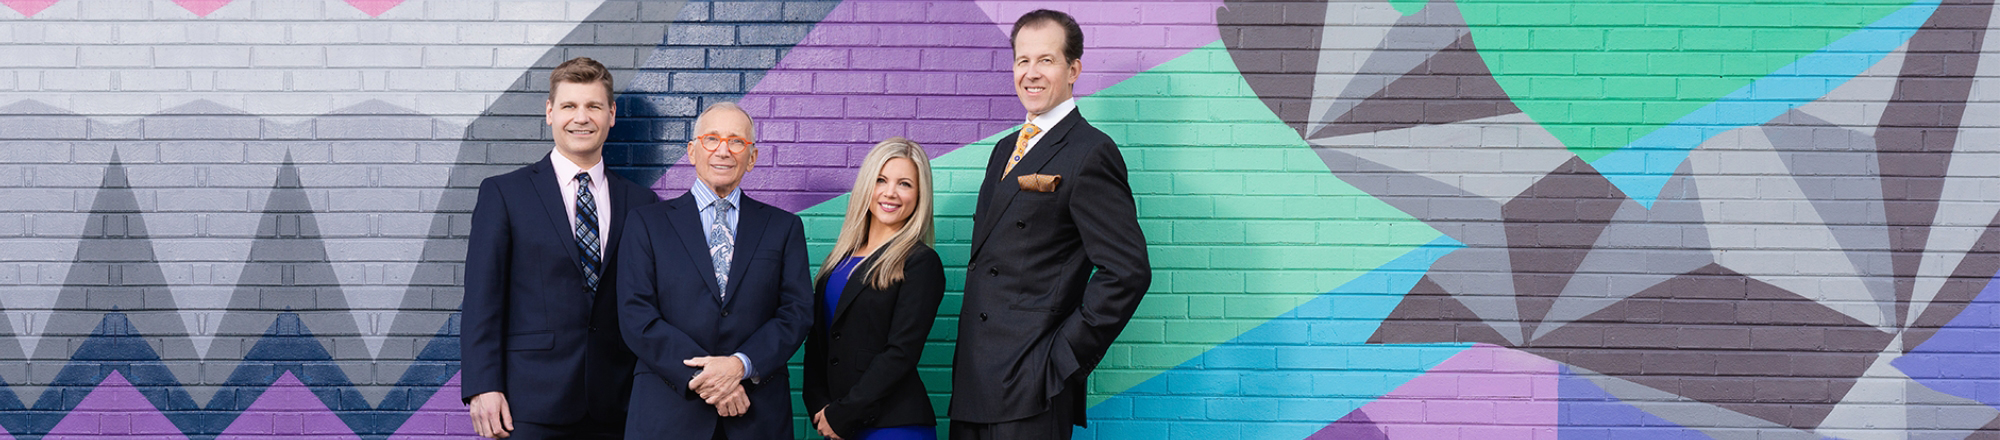 Portrait of the 4 doctors at Grossman | Capraro Plastic Surgery